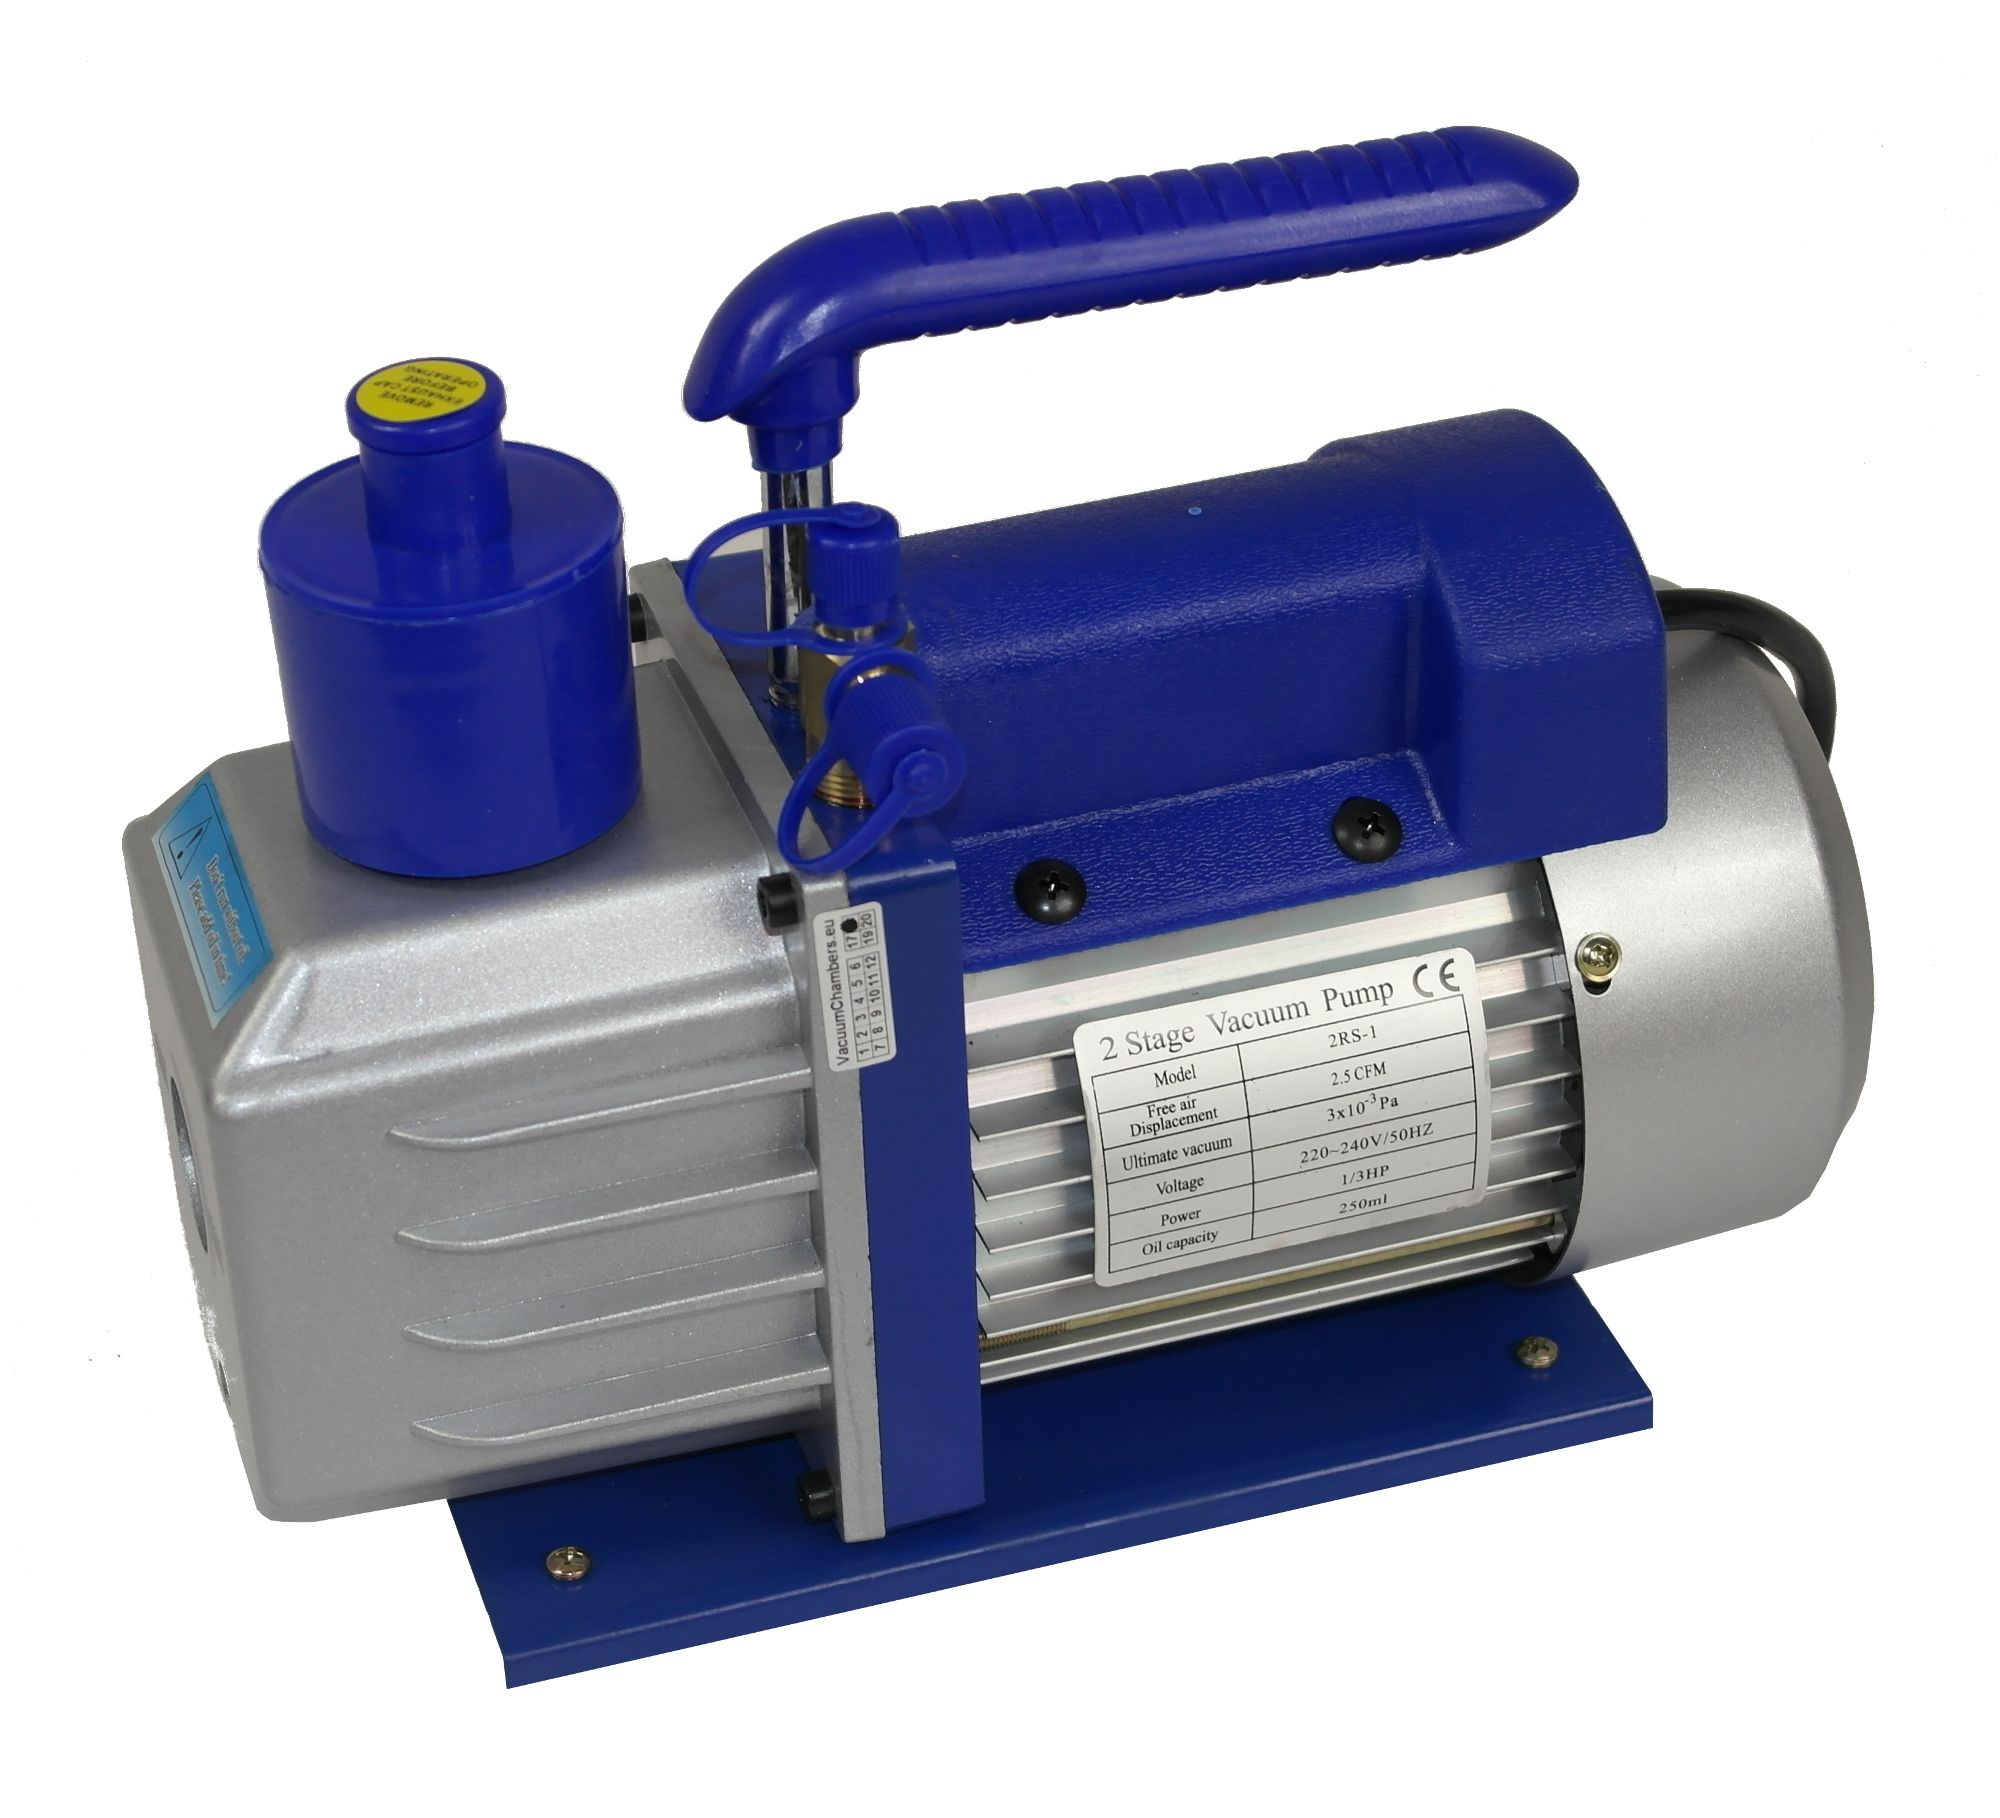 There Are Many Different Types Of Vacuum Pumps And Systems That